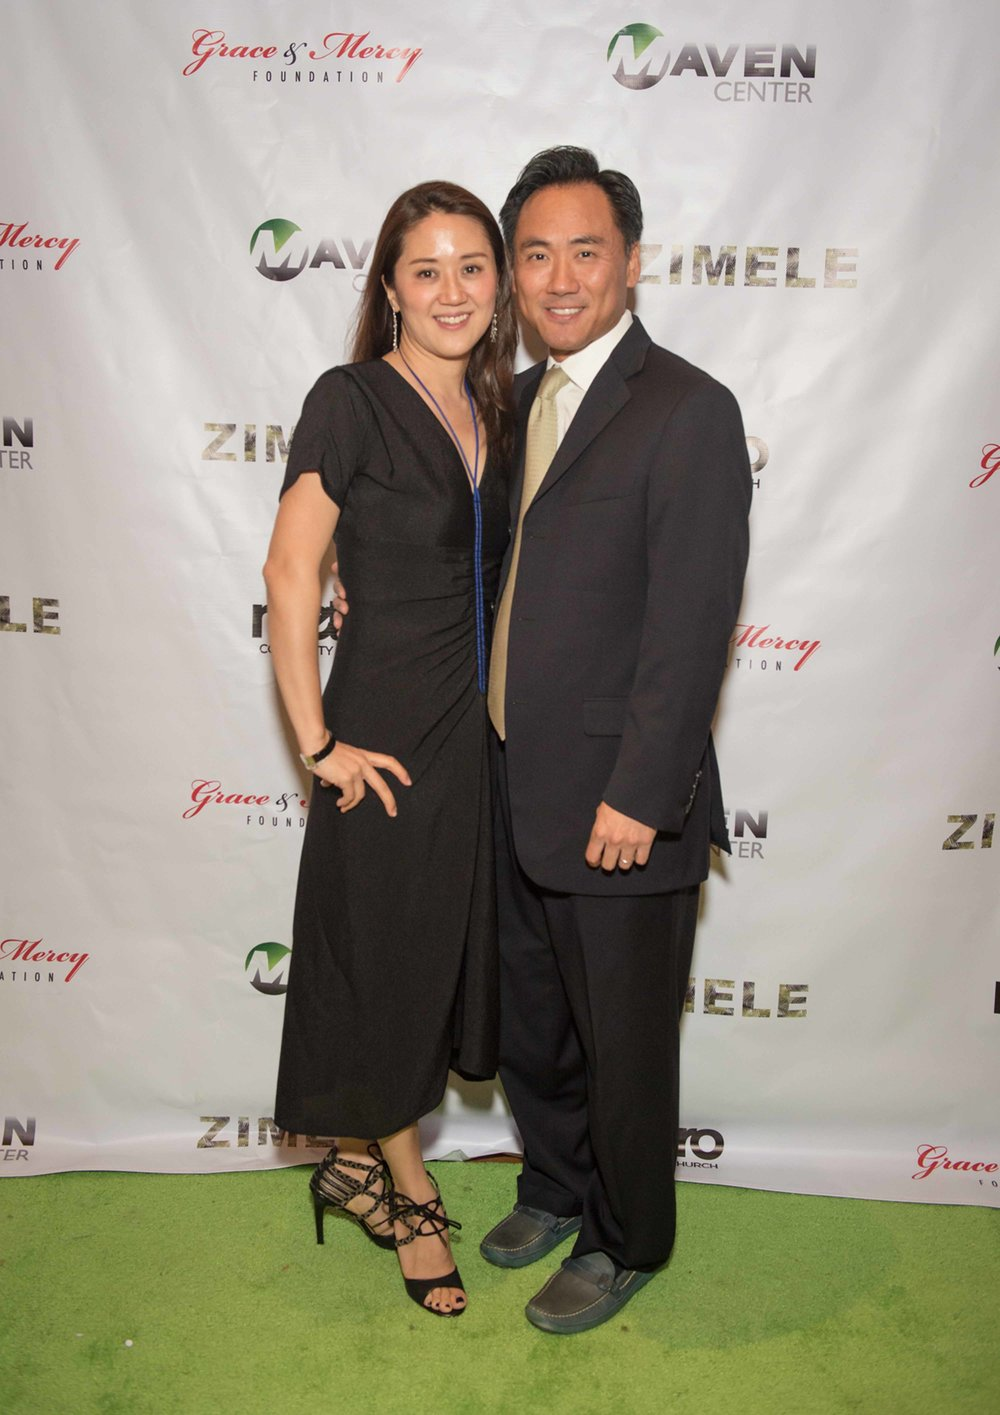 2017-10-21 Zimele USA 6th Annual Gala - Maritime Parc - Jersey City NJ_0076.jpg